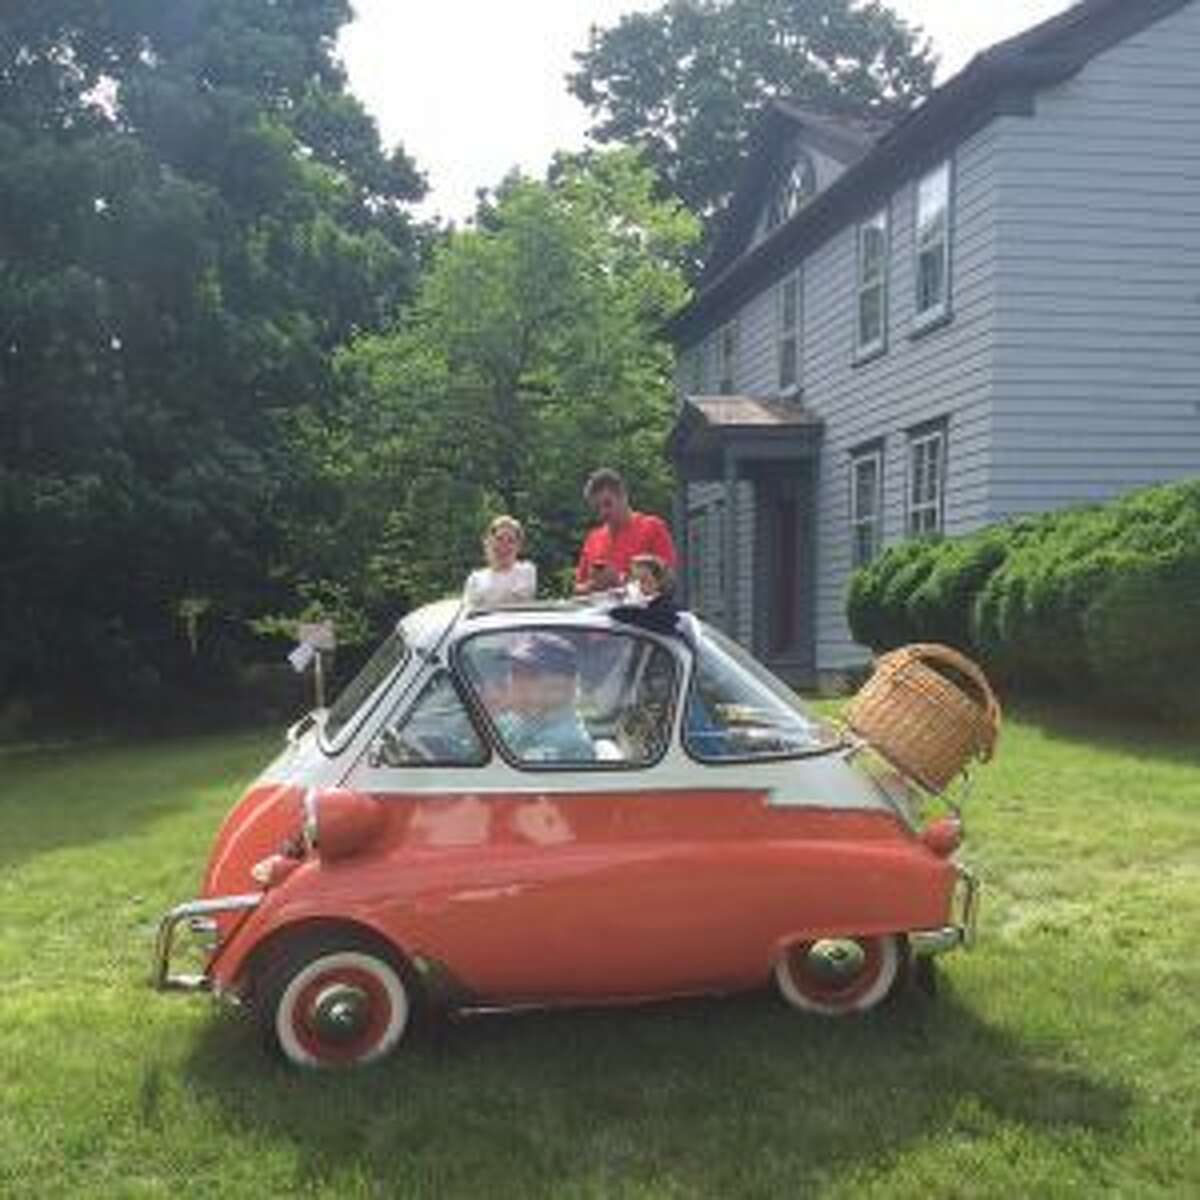 Tom O'Neill sits in a 1950 Isetta, a second place winner at the June 3 event.- Contributed photo